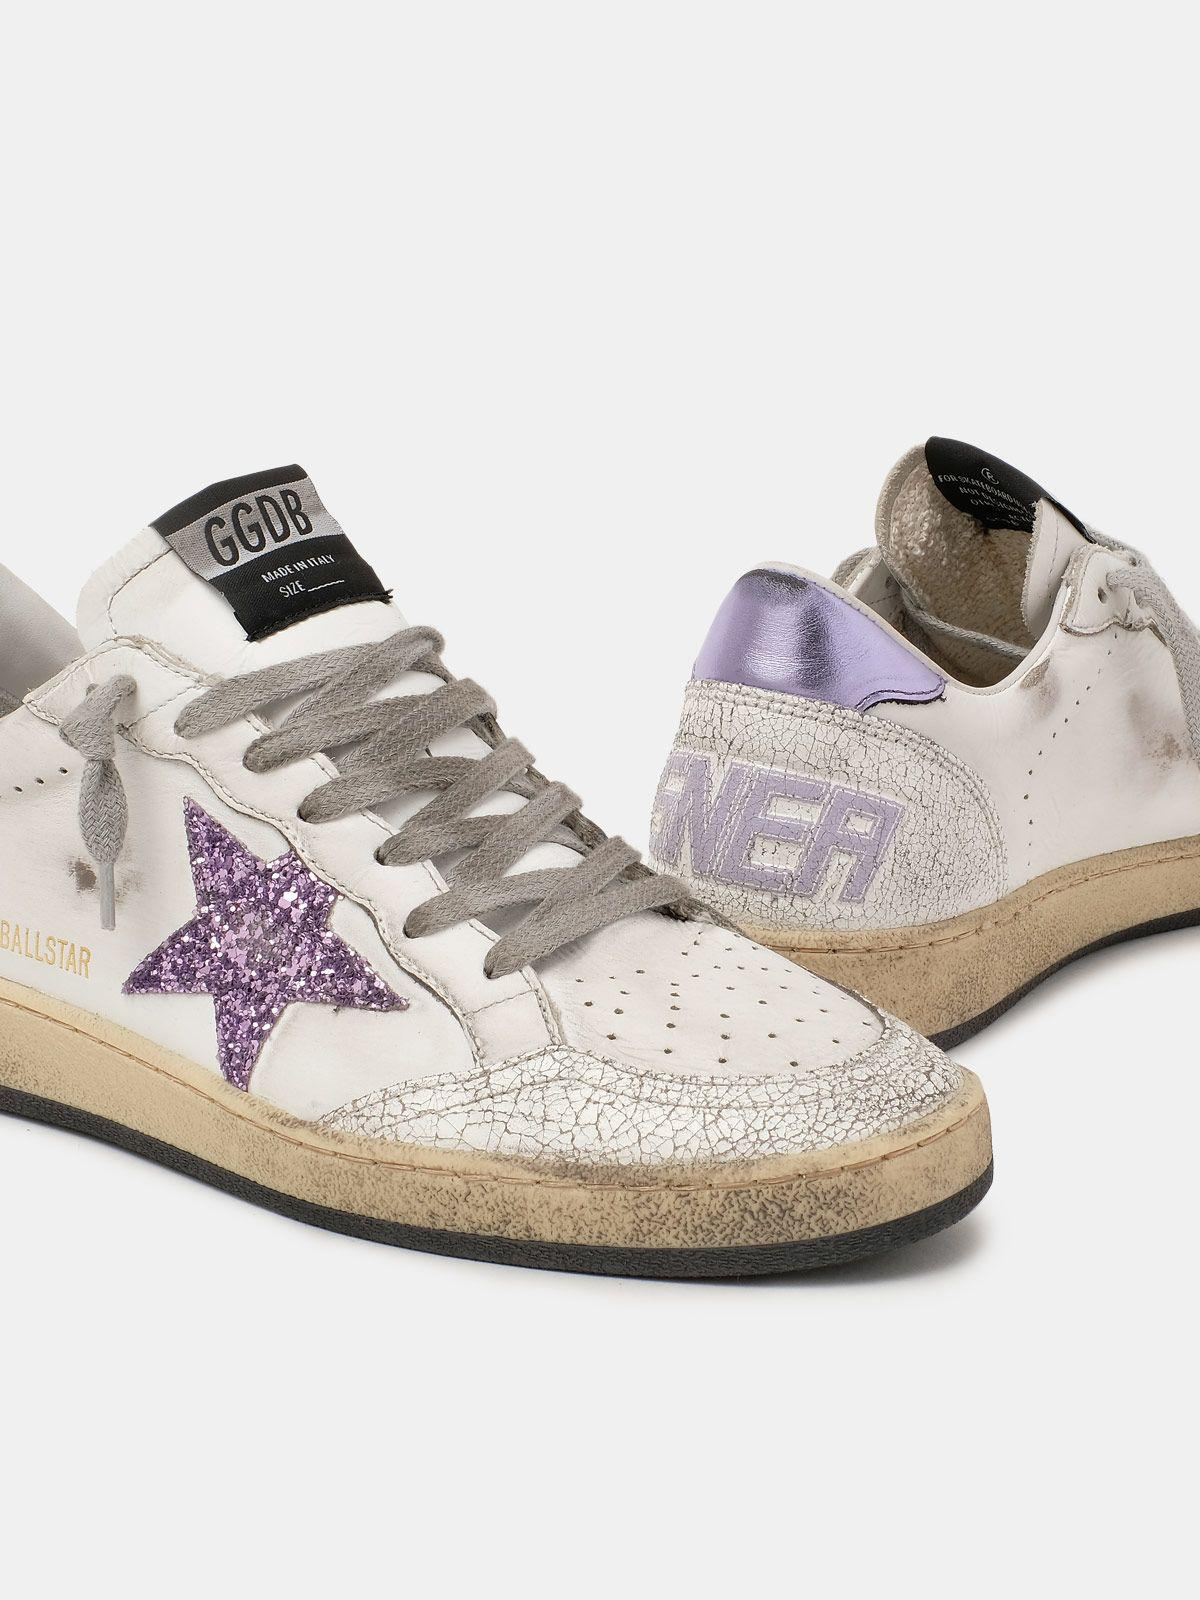 Ball Star sneakers with purple glitter 3